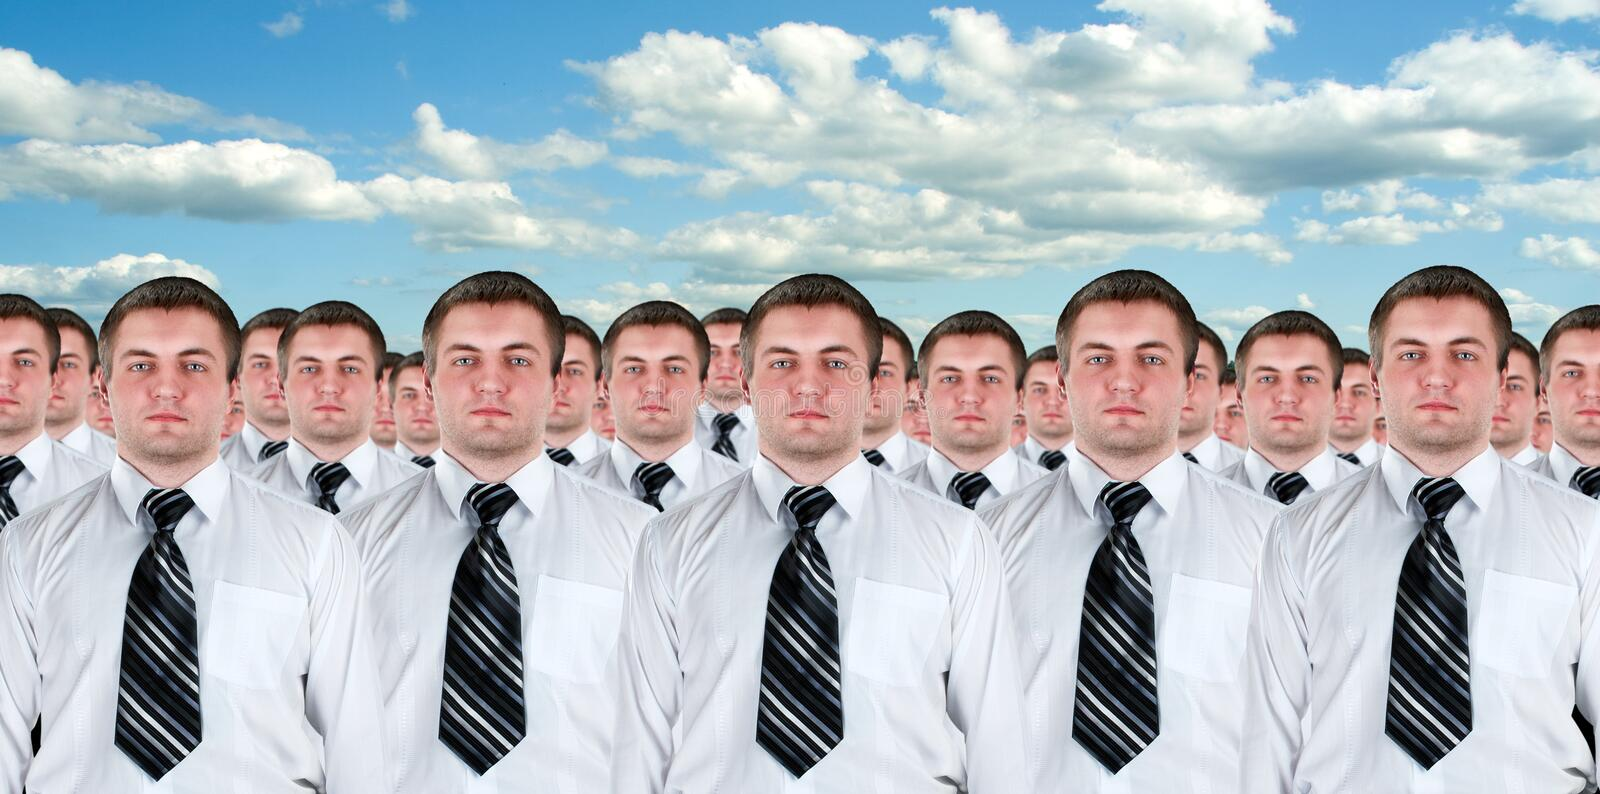 Many identical businessmen clones. Many identical businessman clones. Businessman production concept royalty free stock photography